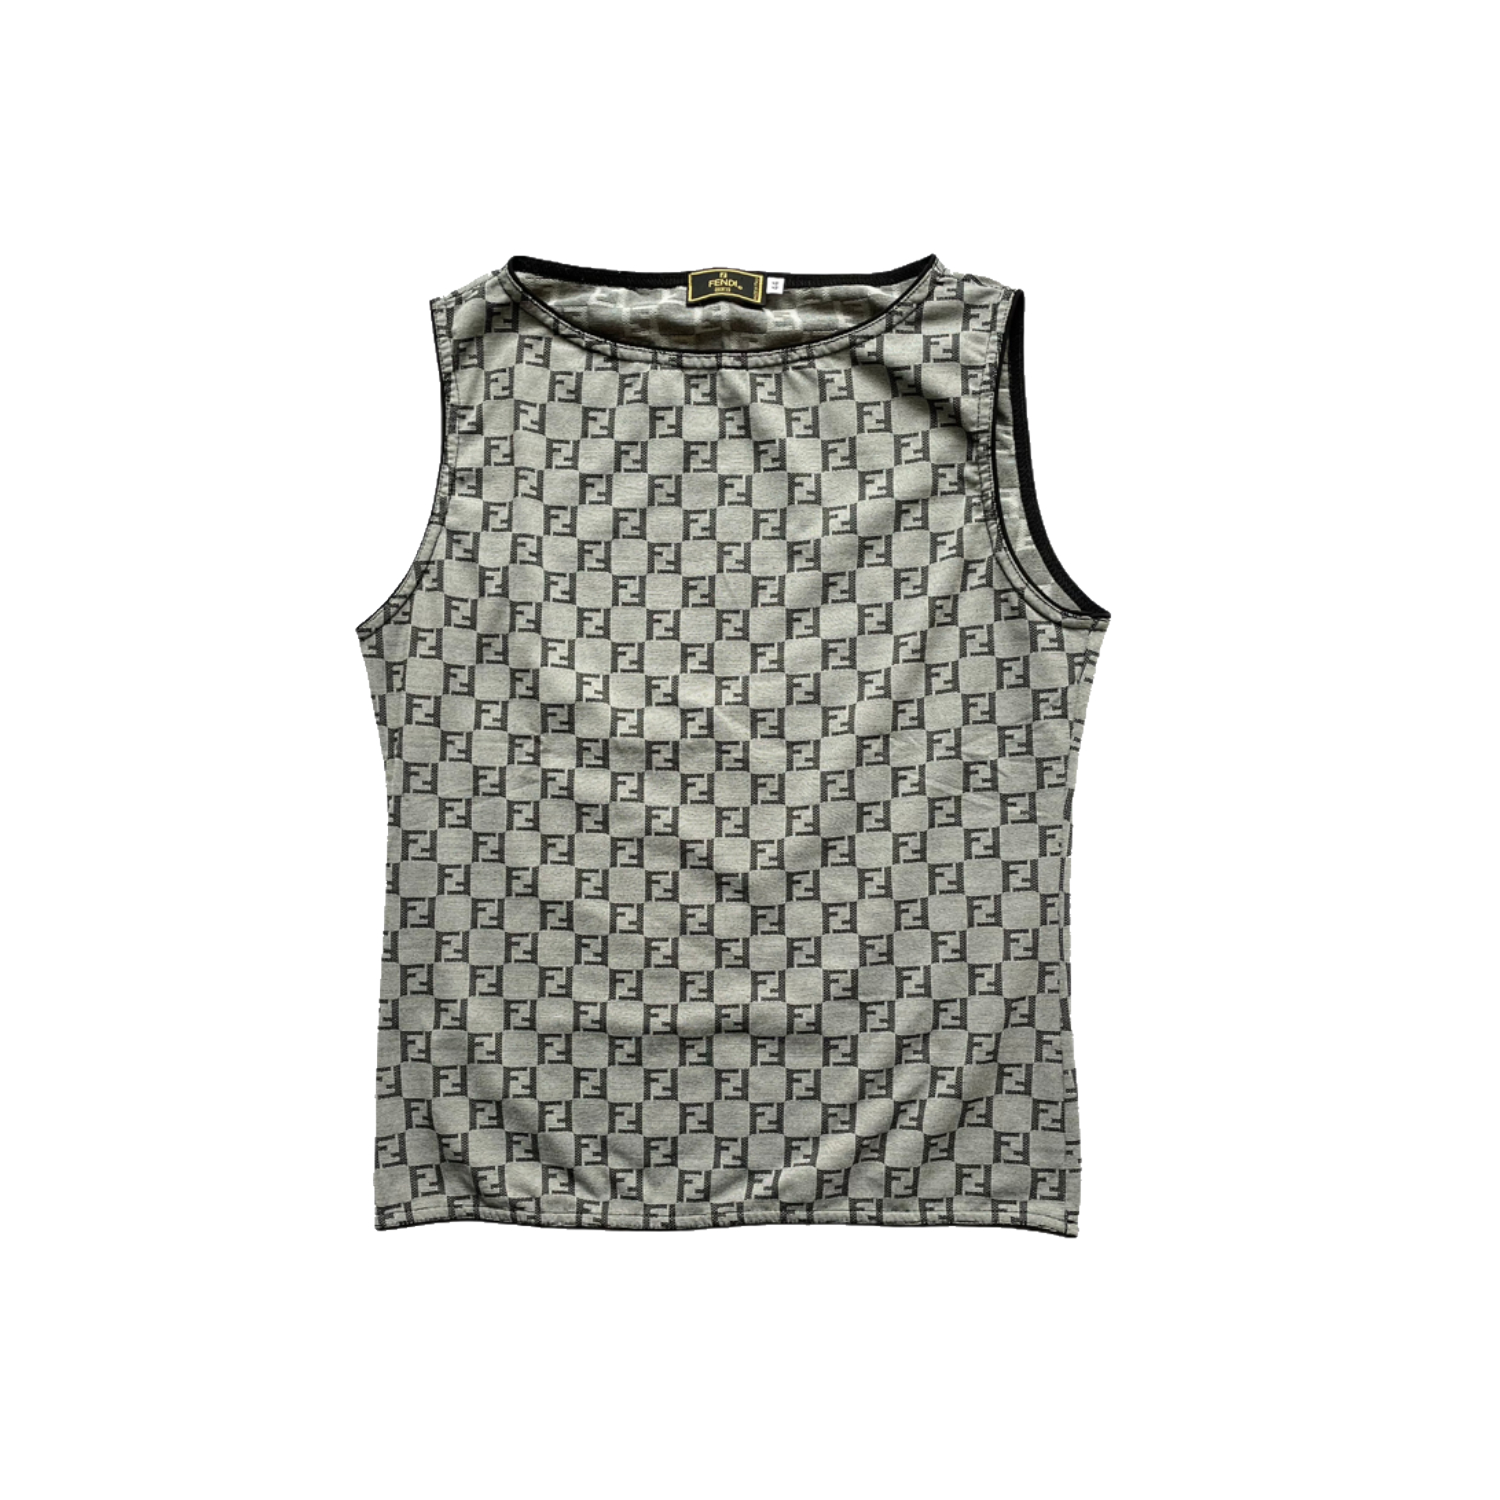 Vintage Fendi Monogram Vest Top in Grey Size 10 | NITRYL